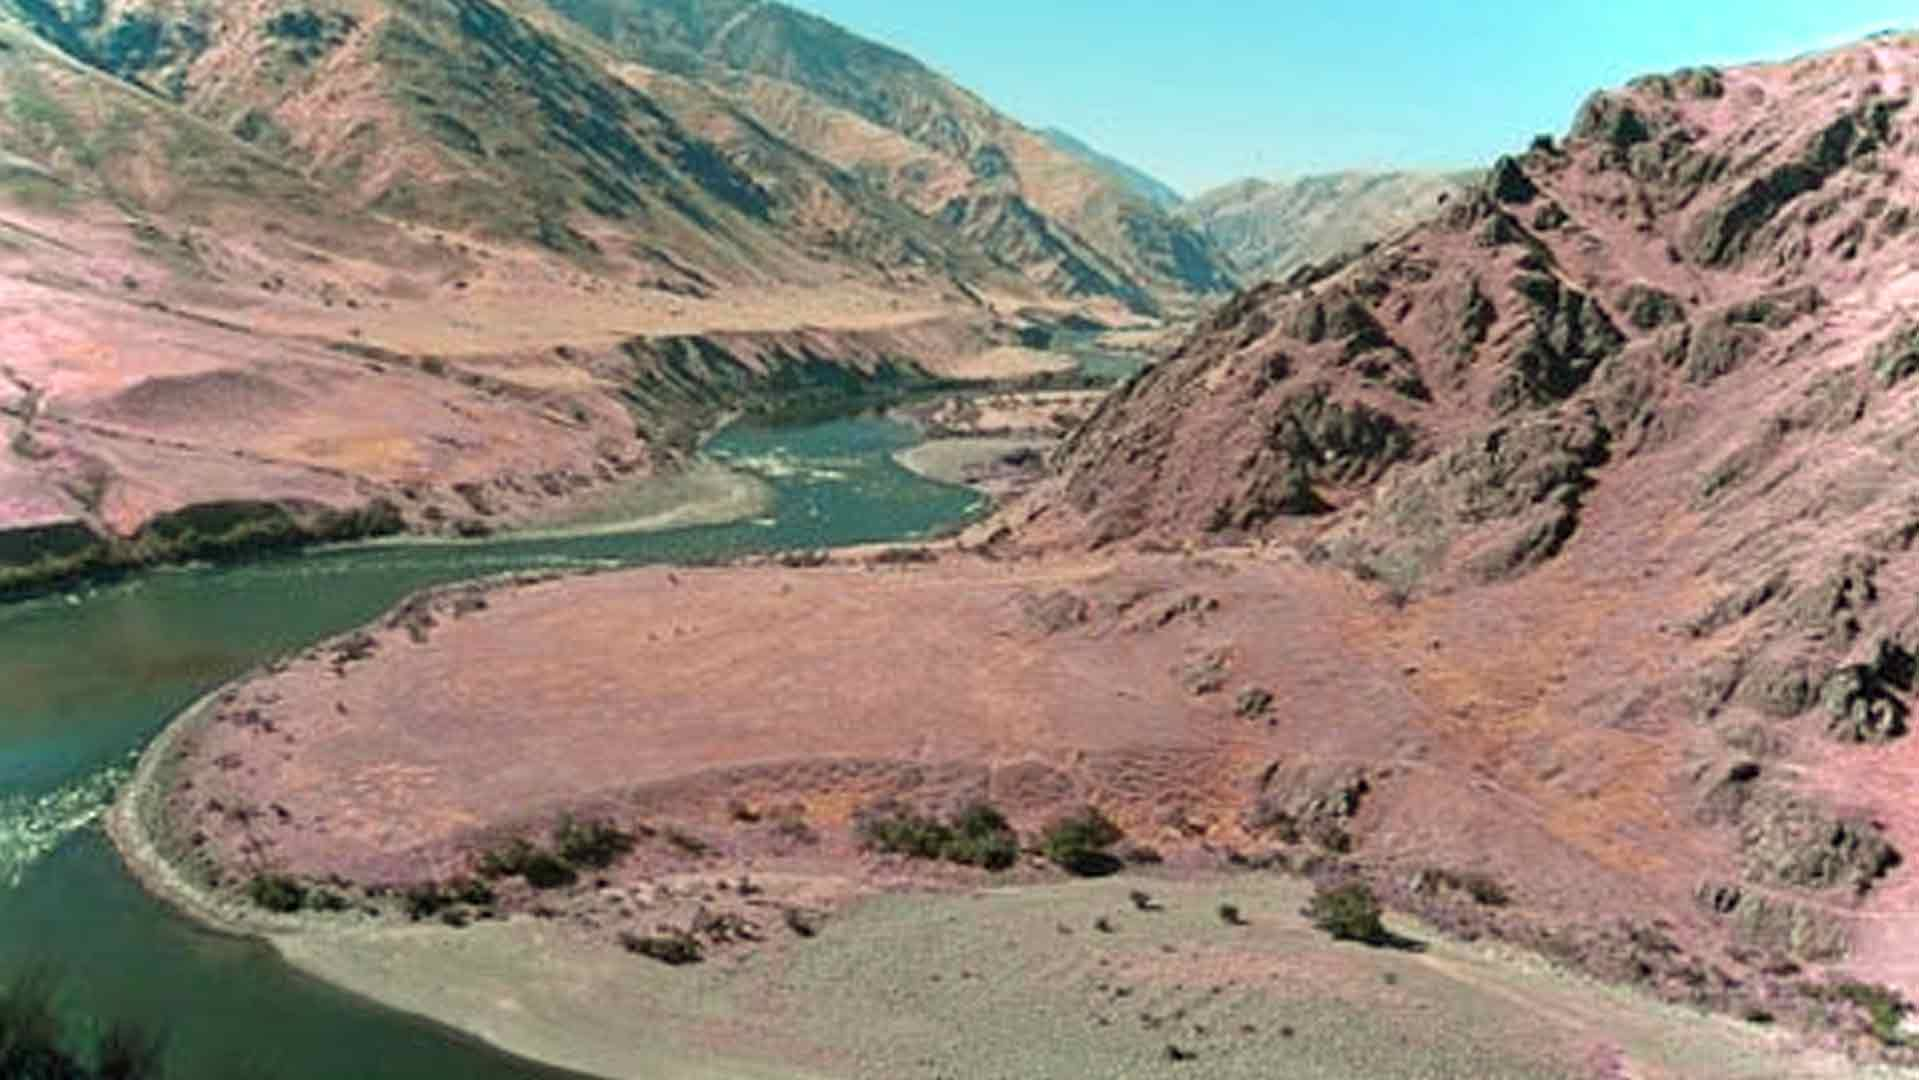 Aerial View of Hells Canyon